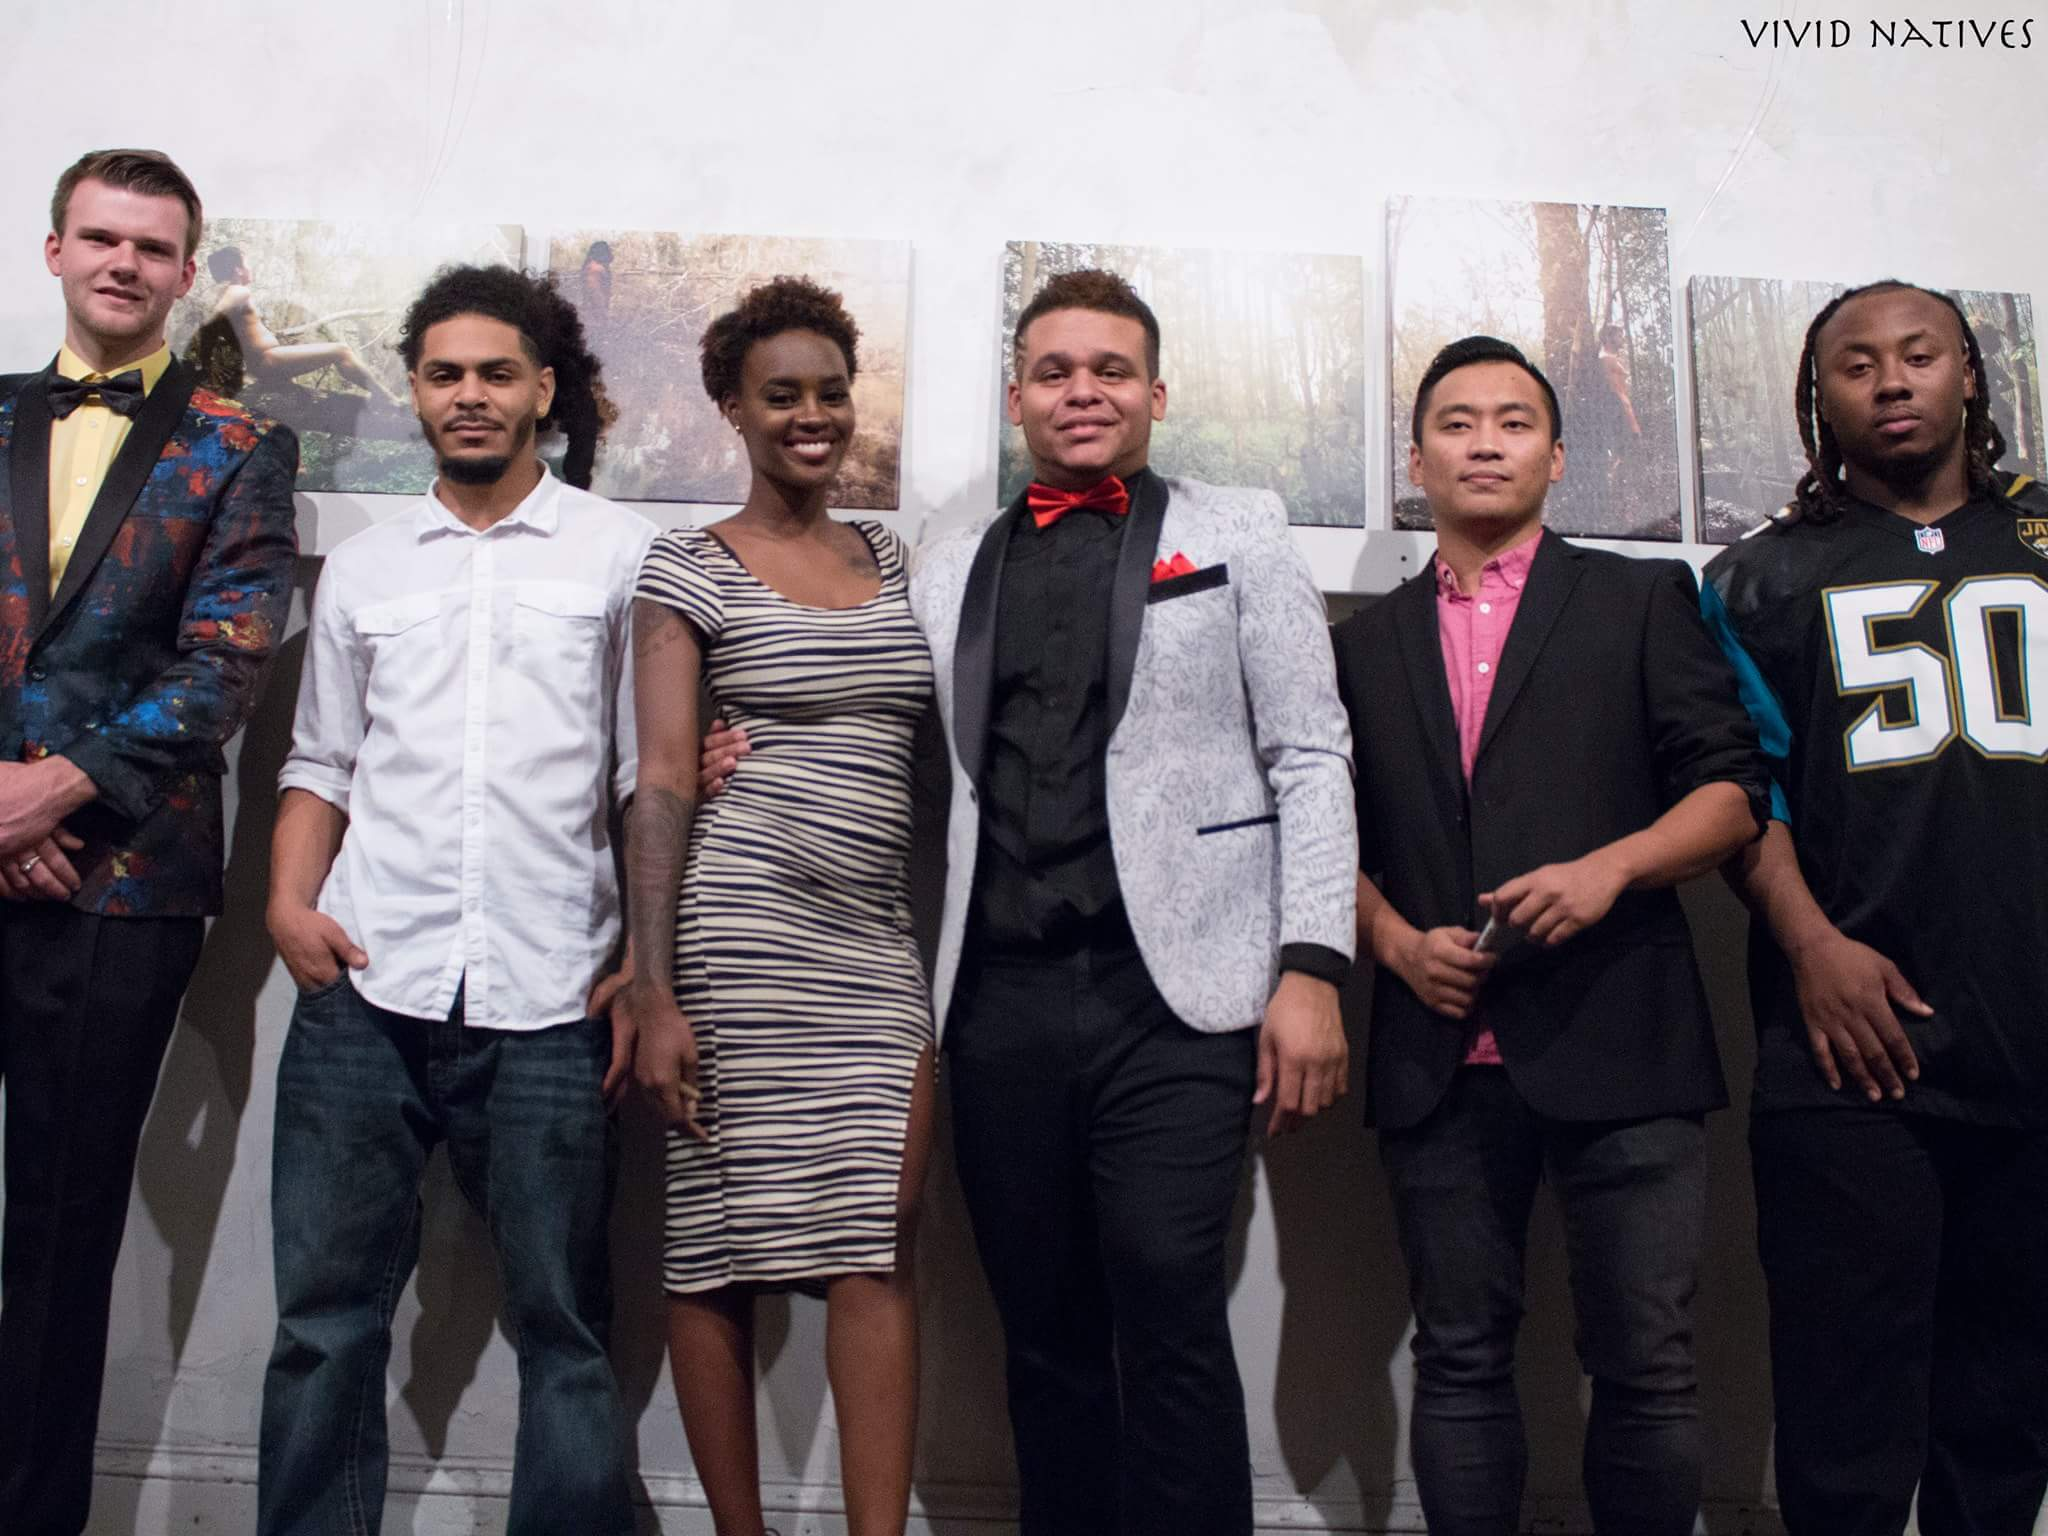 Anthony Smith and his photoshoot models